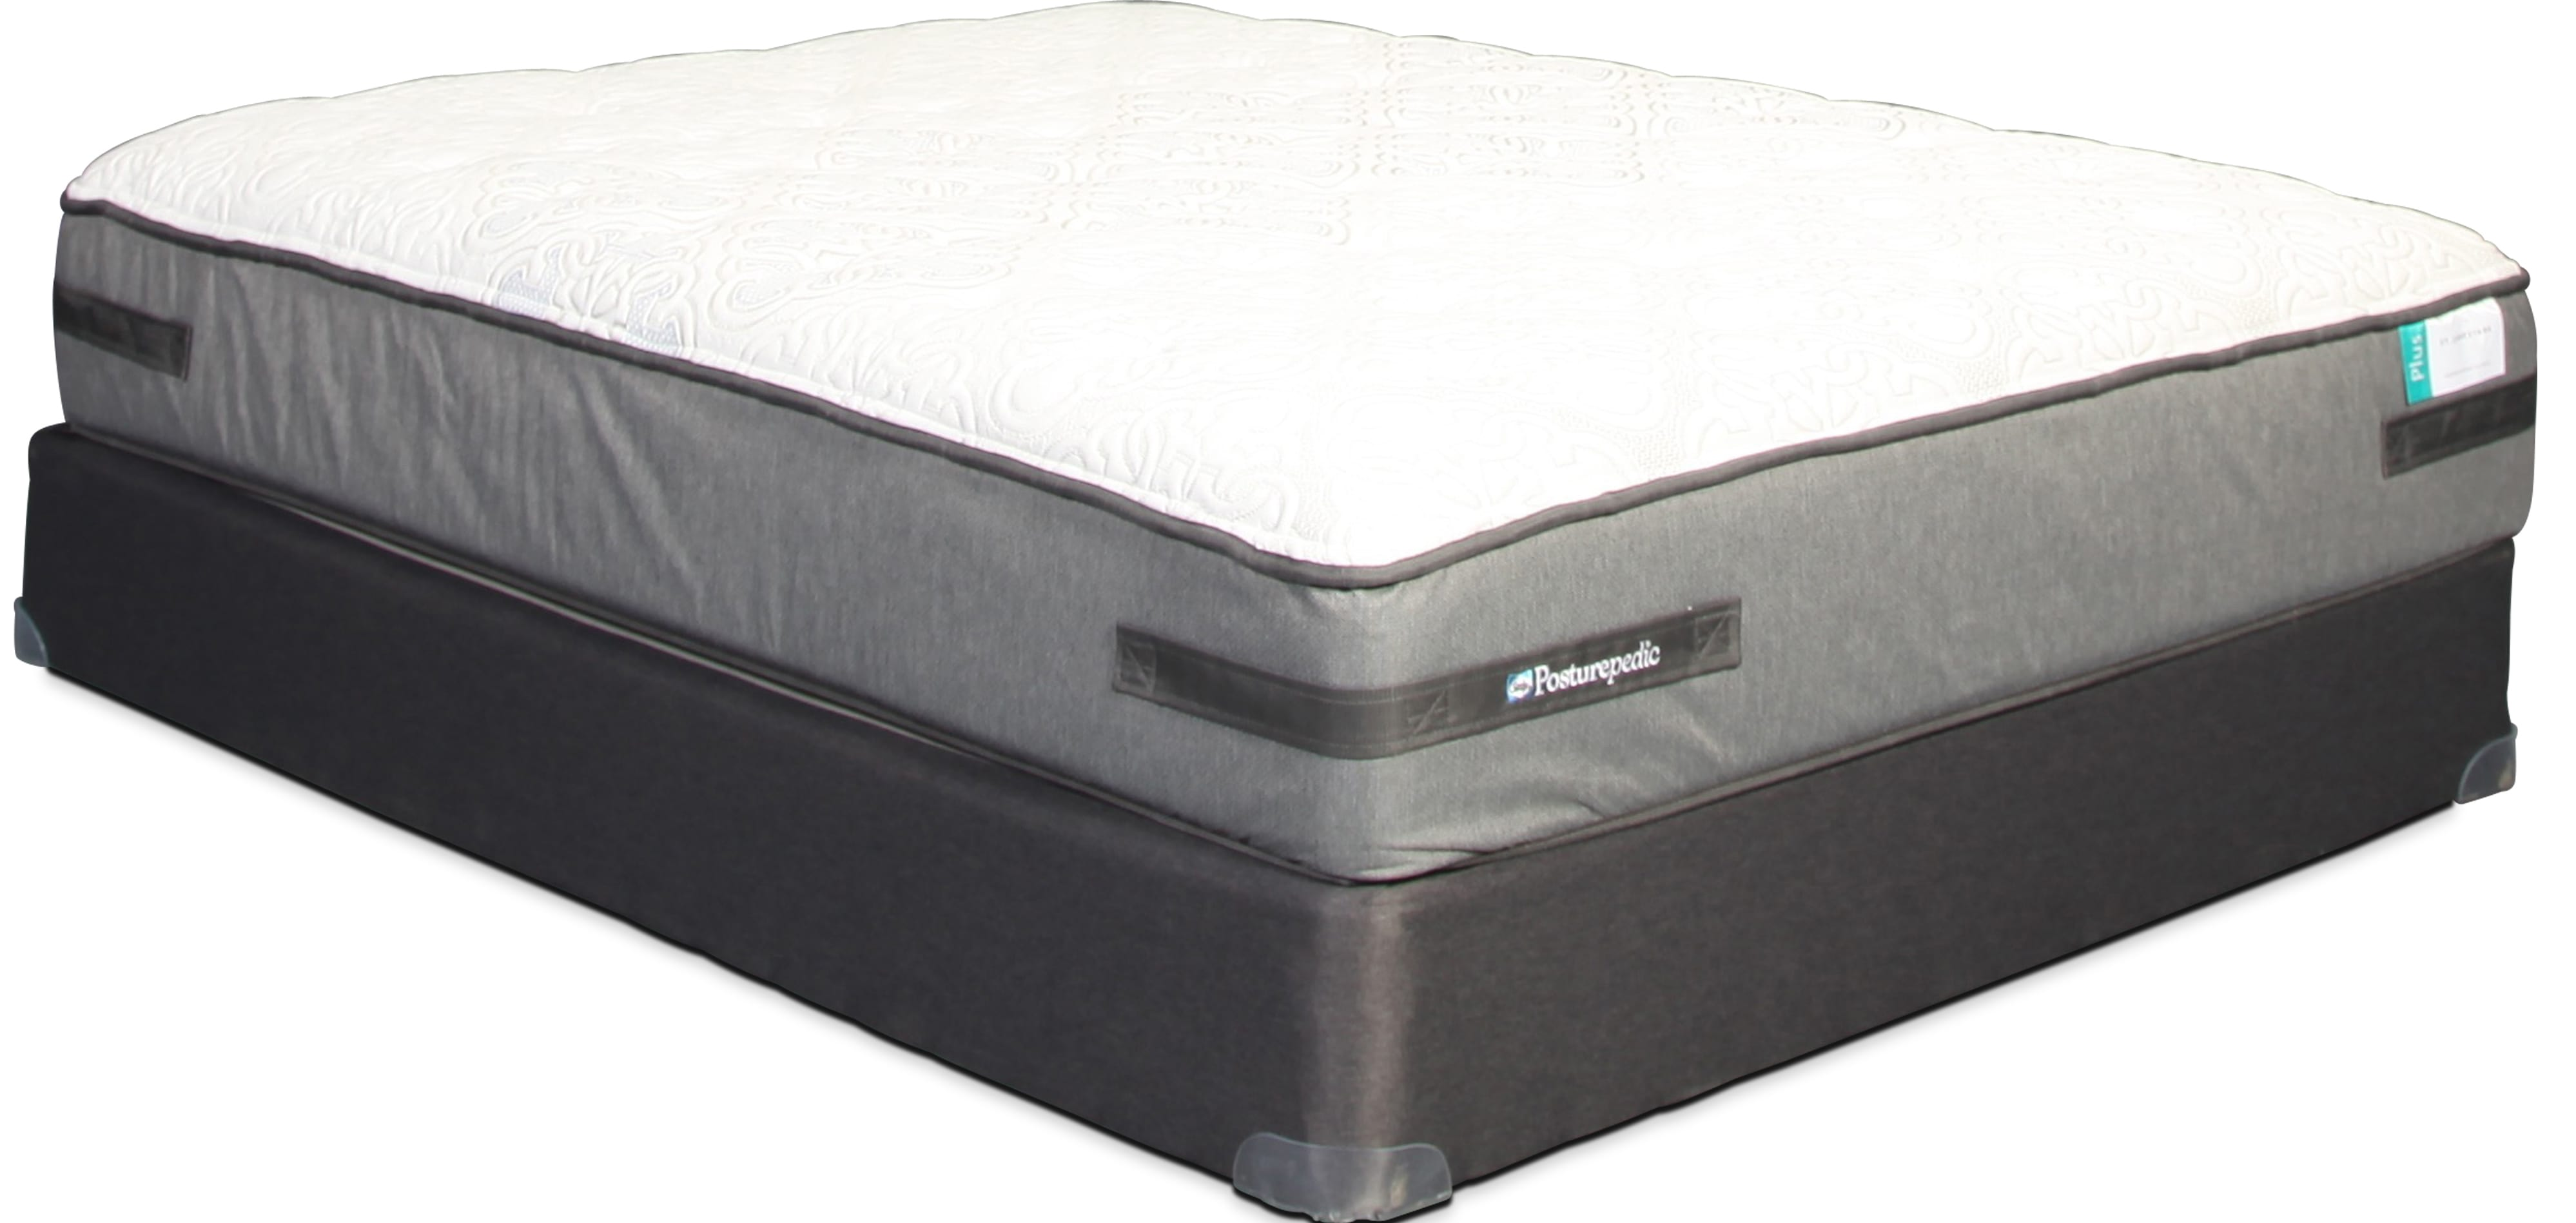 Sealy St. James Park Cushion Firm Queen Mattress and Split Boxsprings